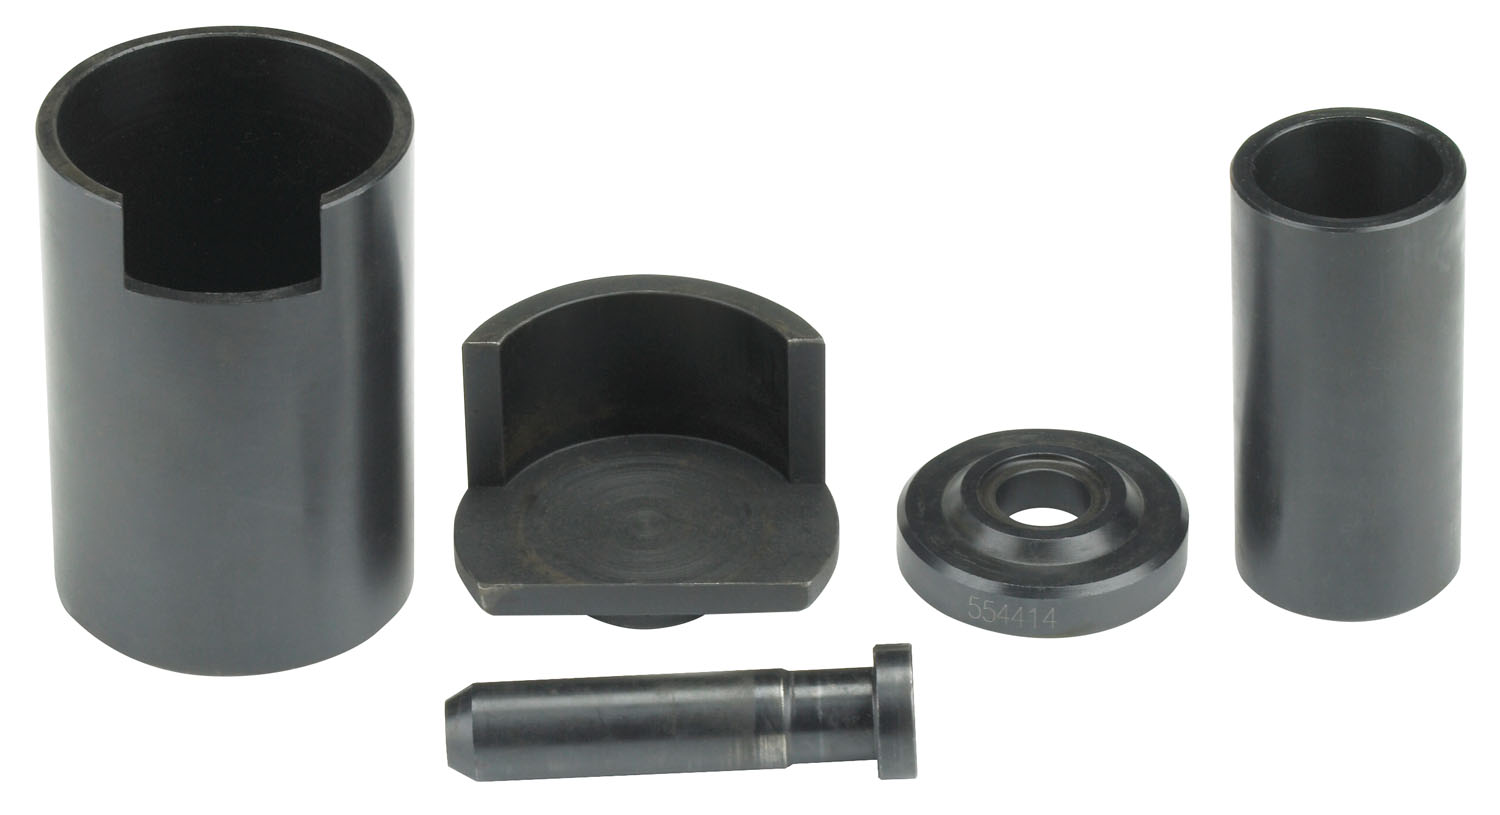 OTC Tools 6539-3 Ford//Mazda Truck Ball Joint Adapter Set